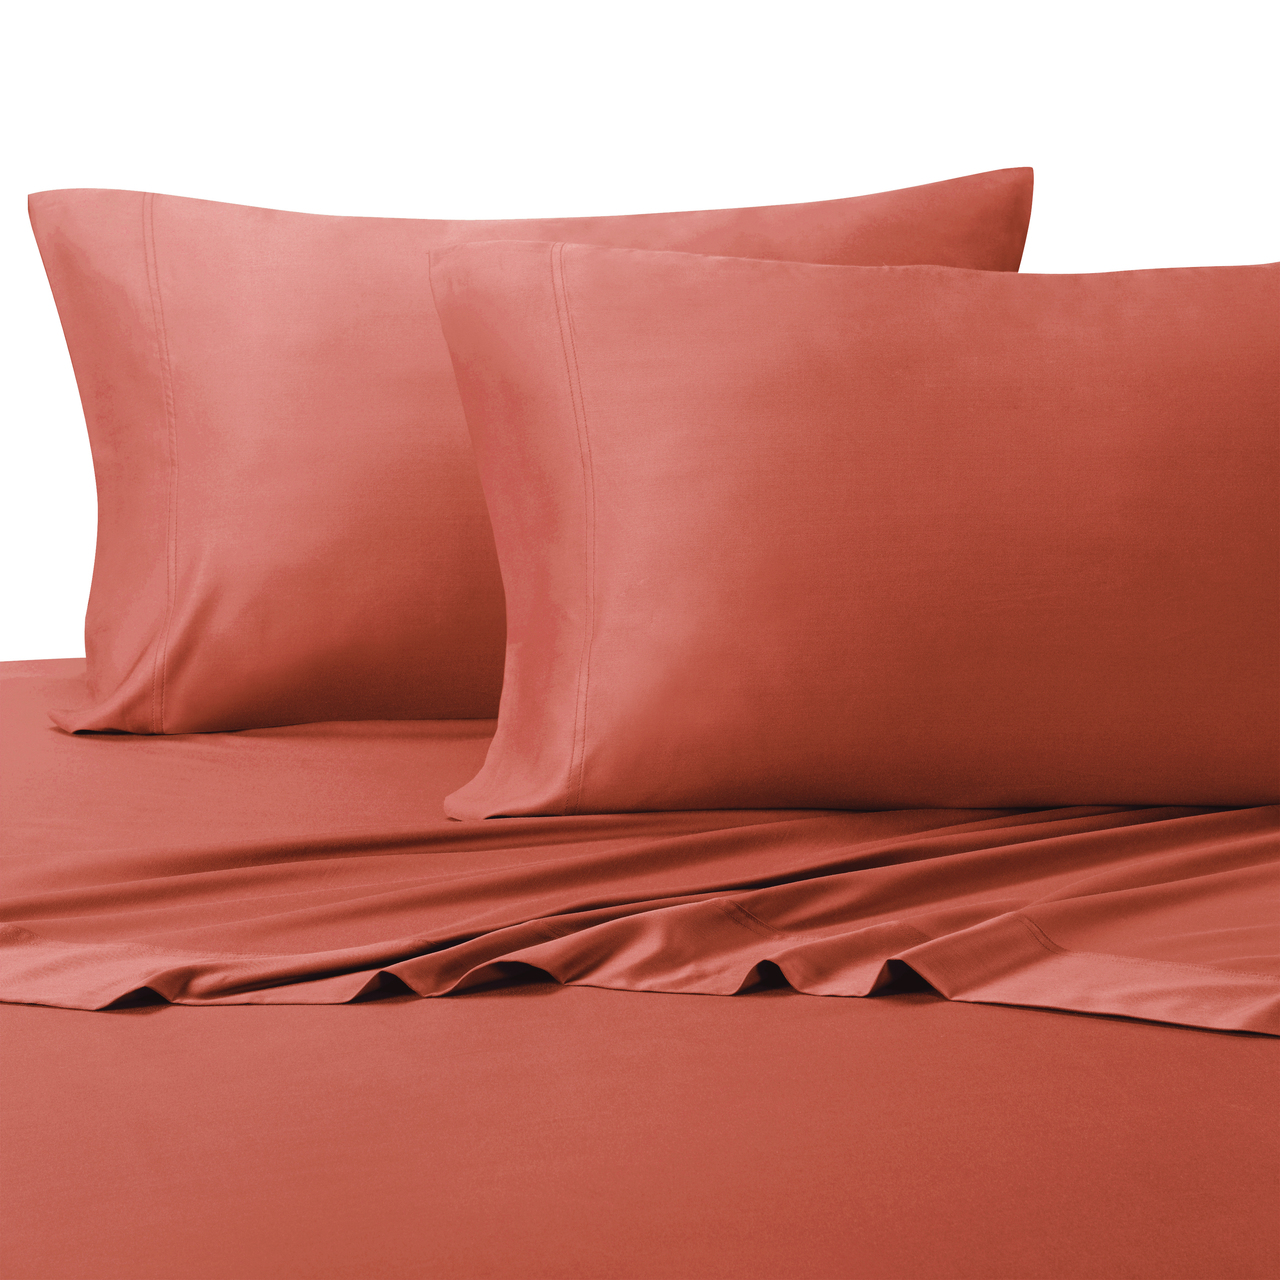 Luxury Bamboo Bed Sheet Super Soft & Extremely Cool 100% Bamboo Viscose Sheets Deep Pocket Sheet